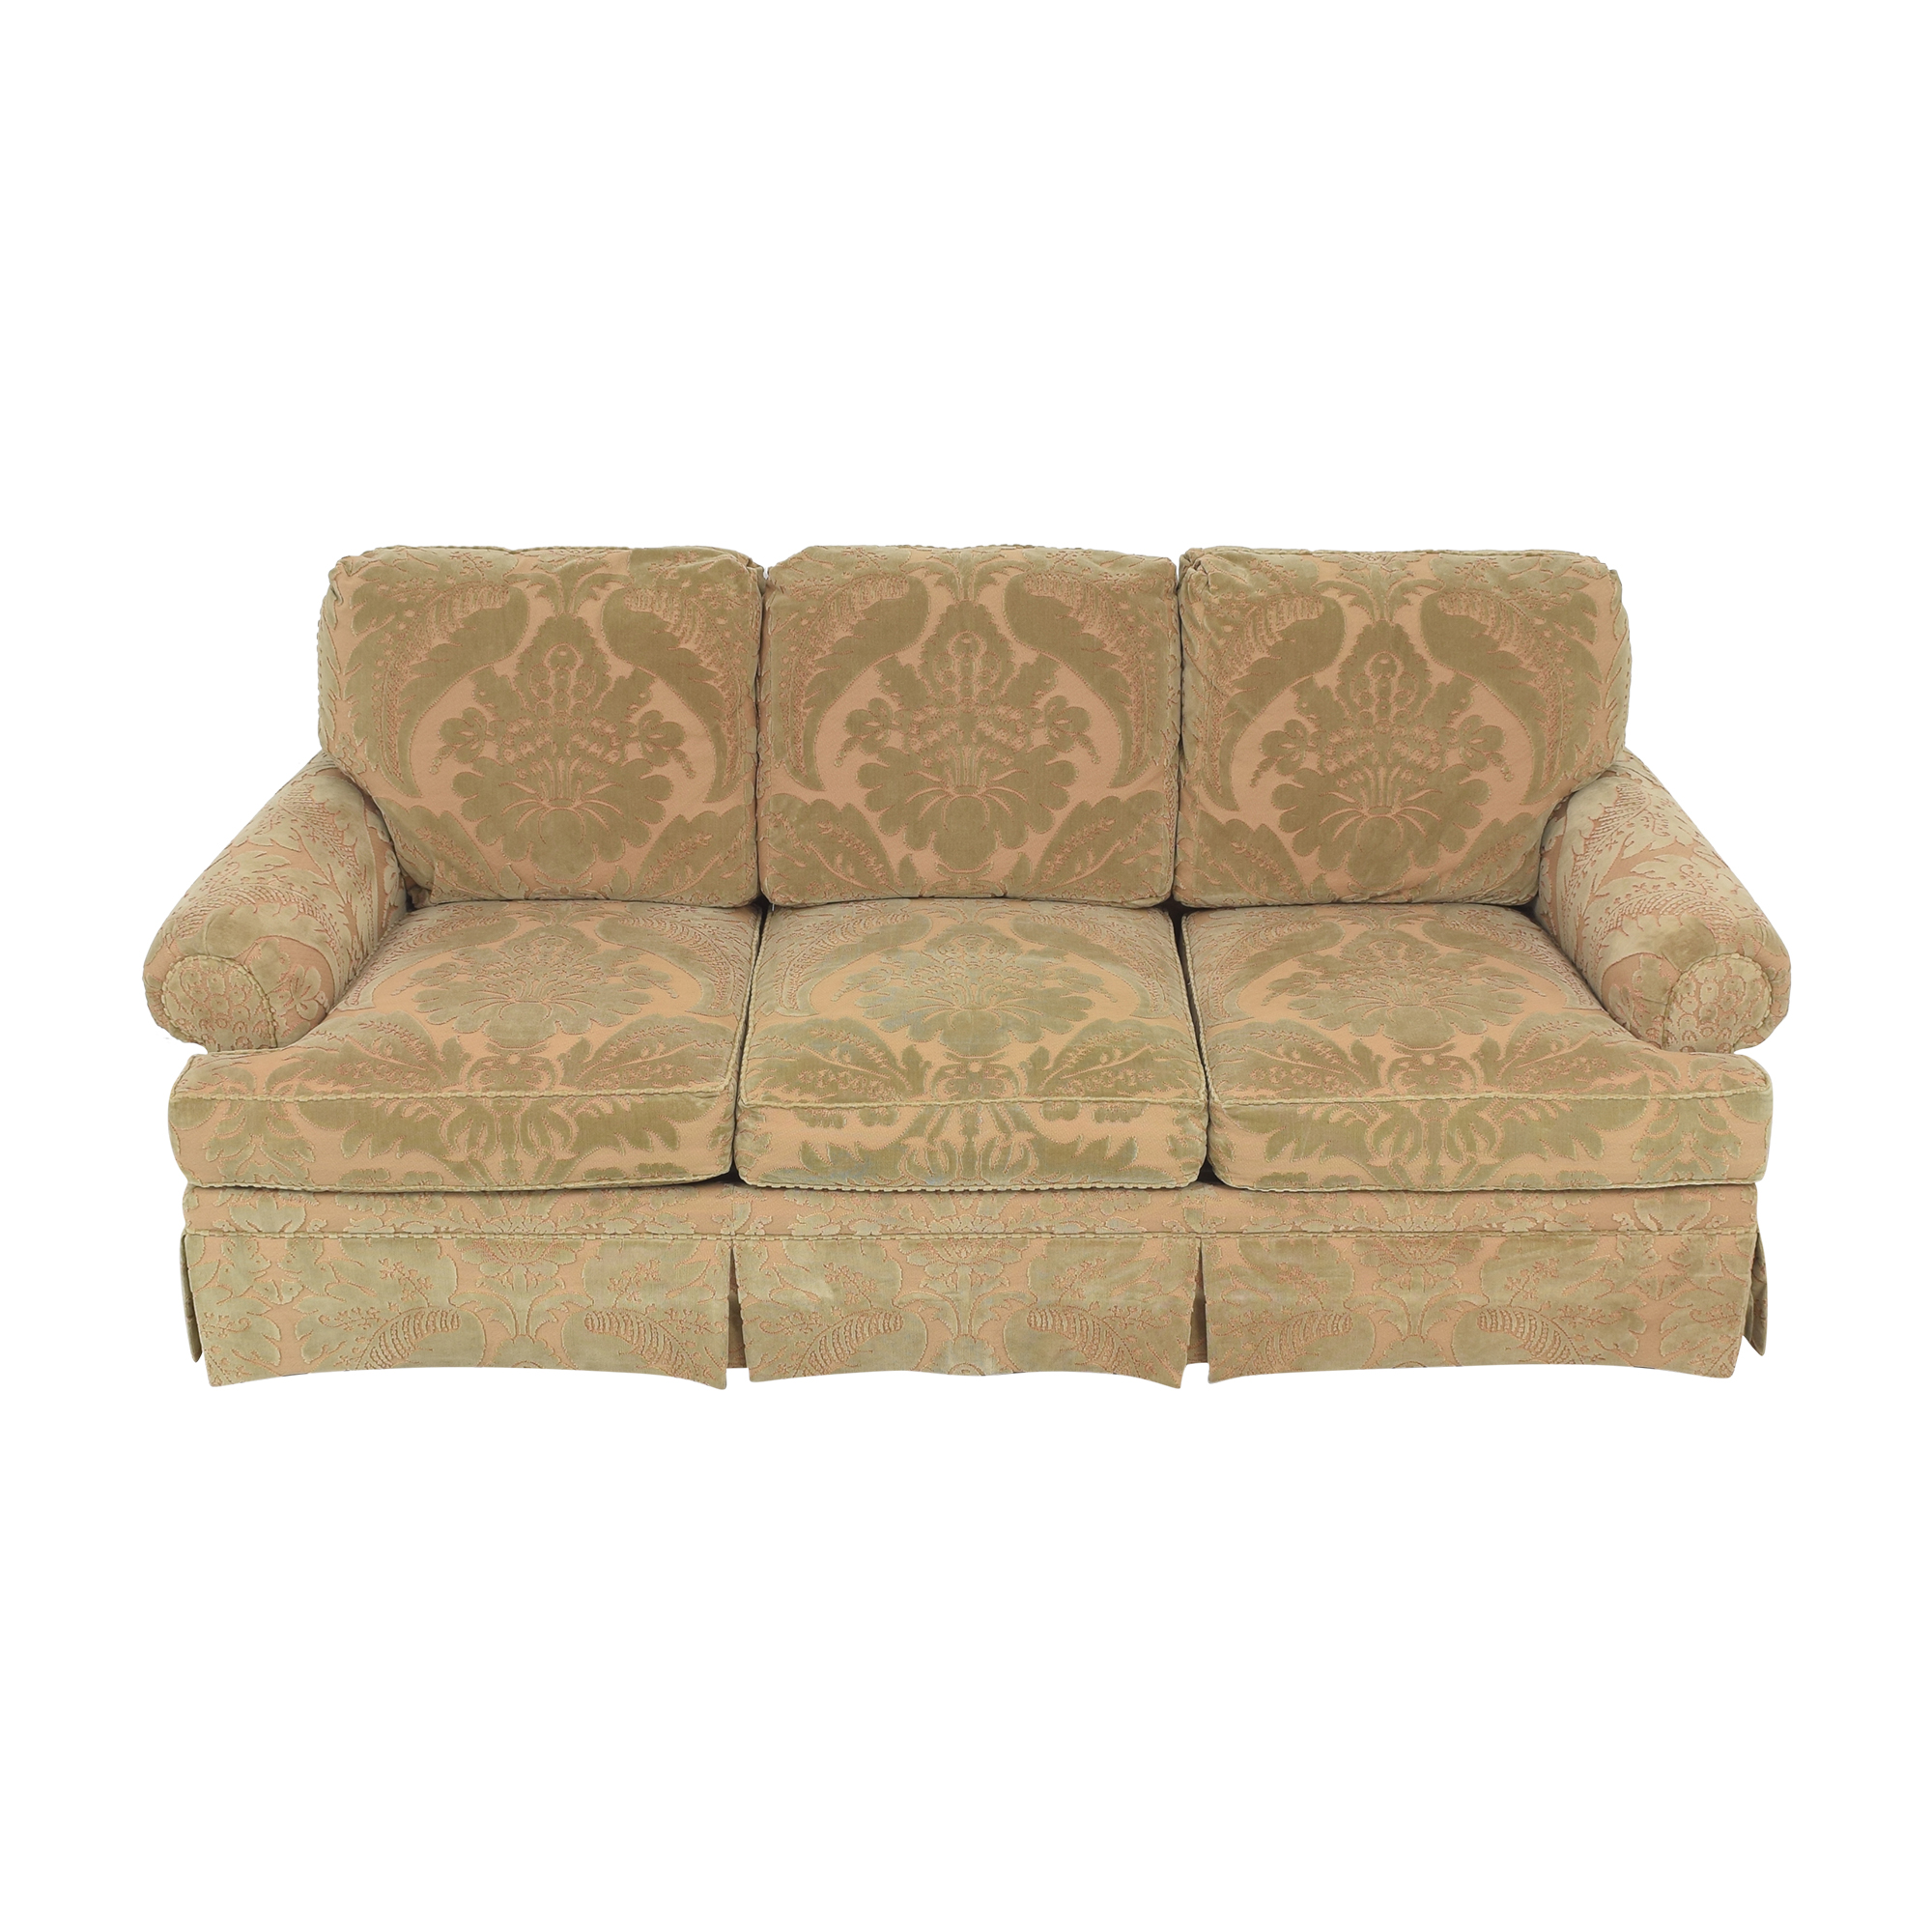 Hickory Chair Hickory Chair Sovereign Collection Devon Sofa discount